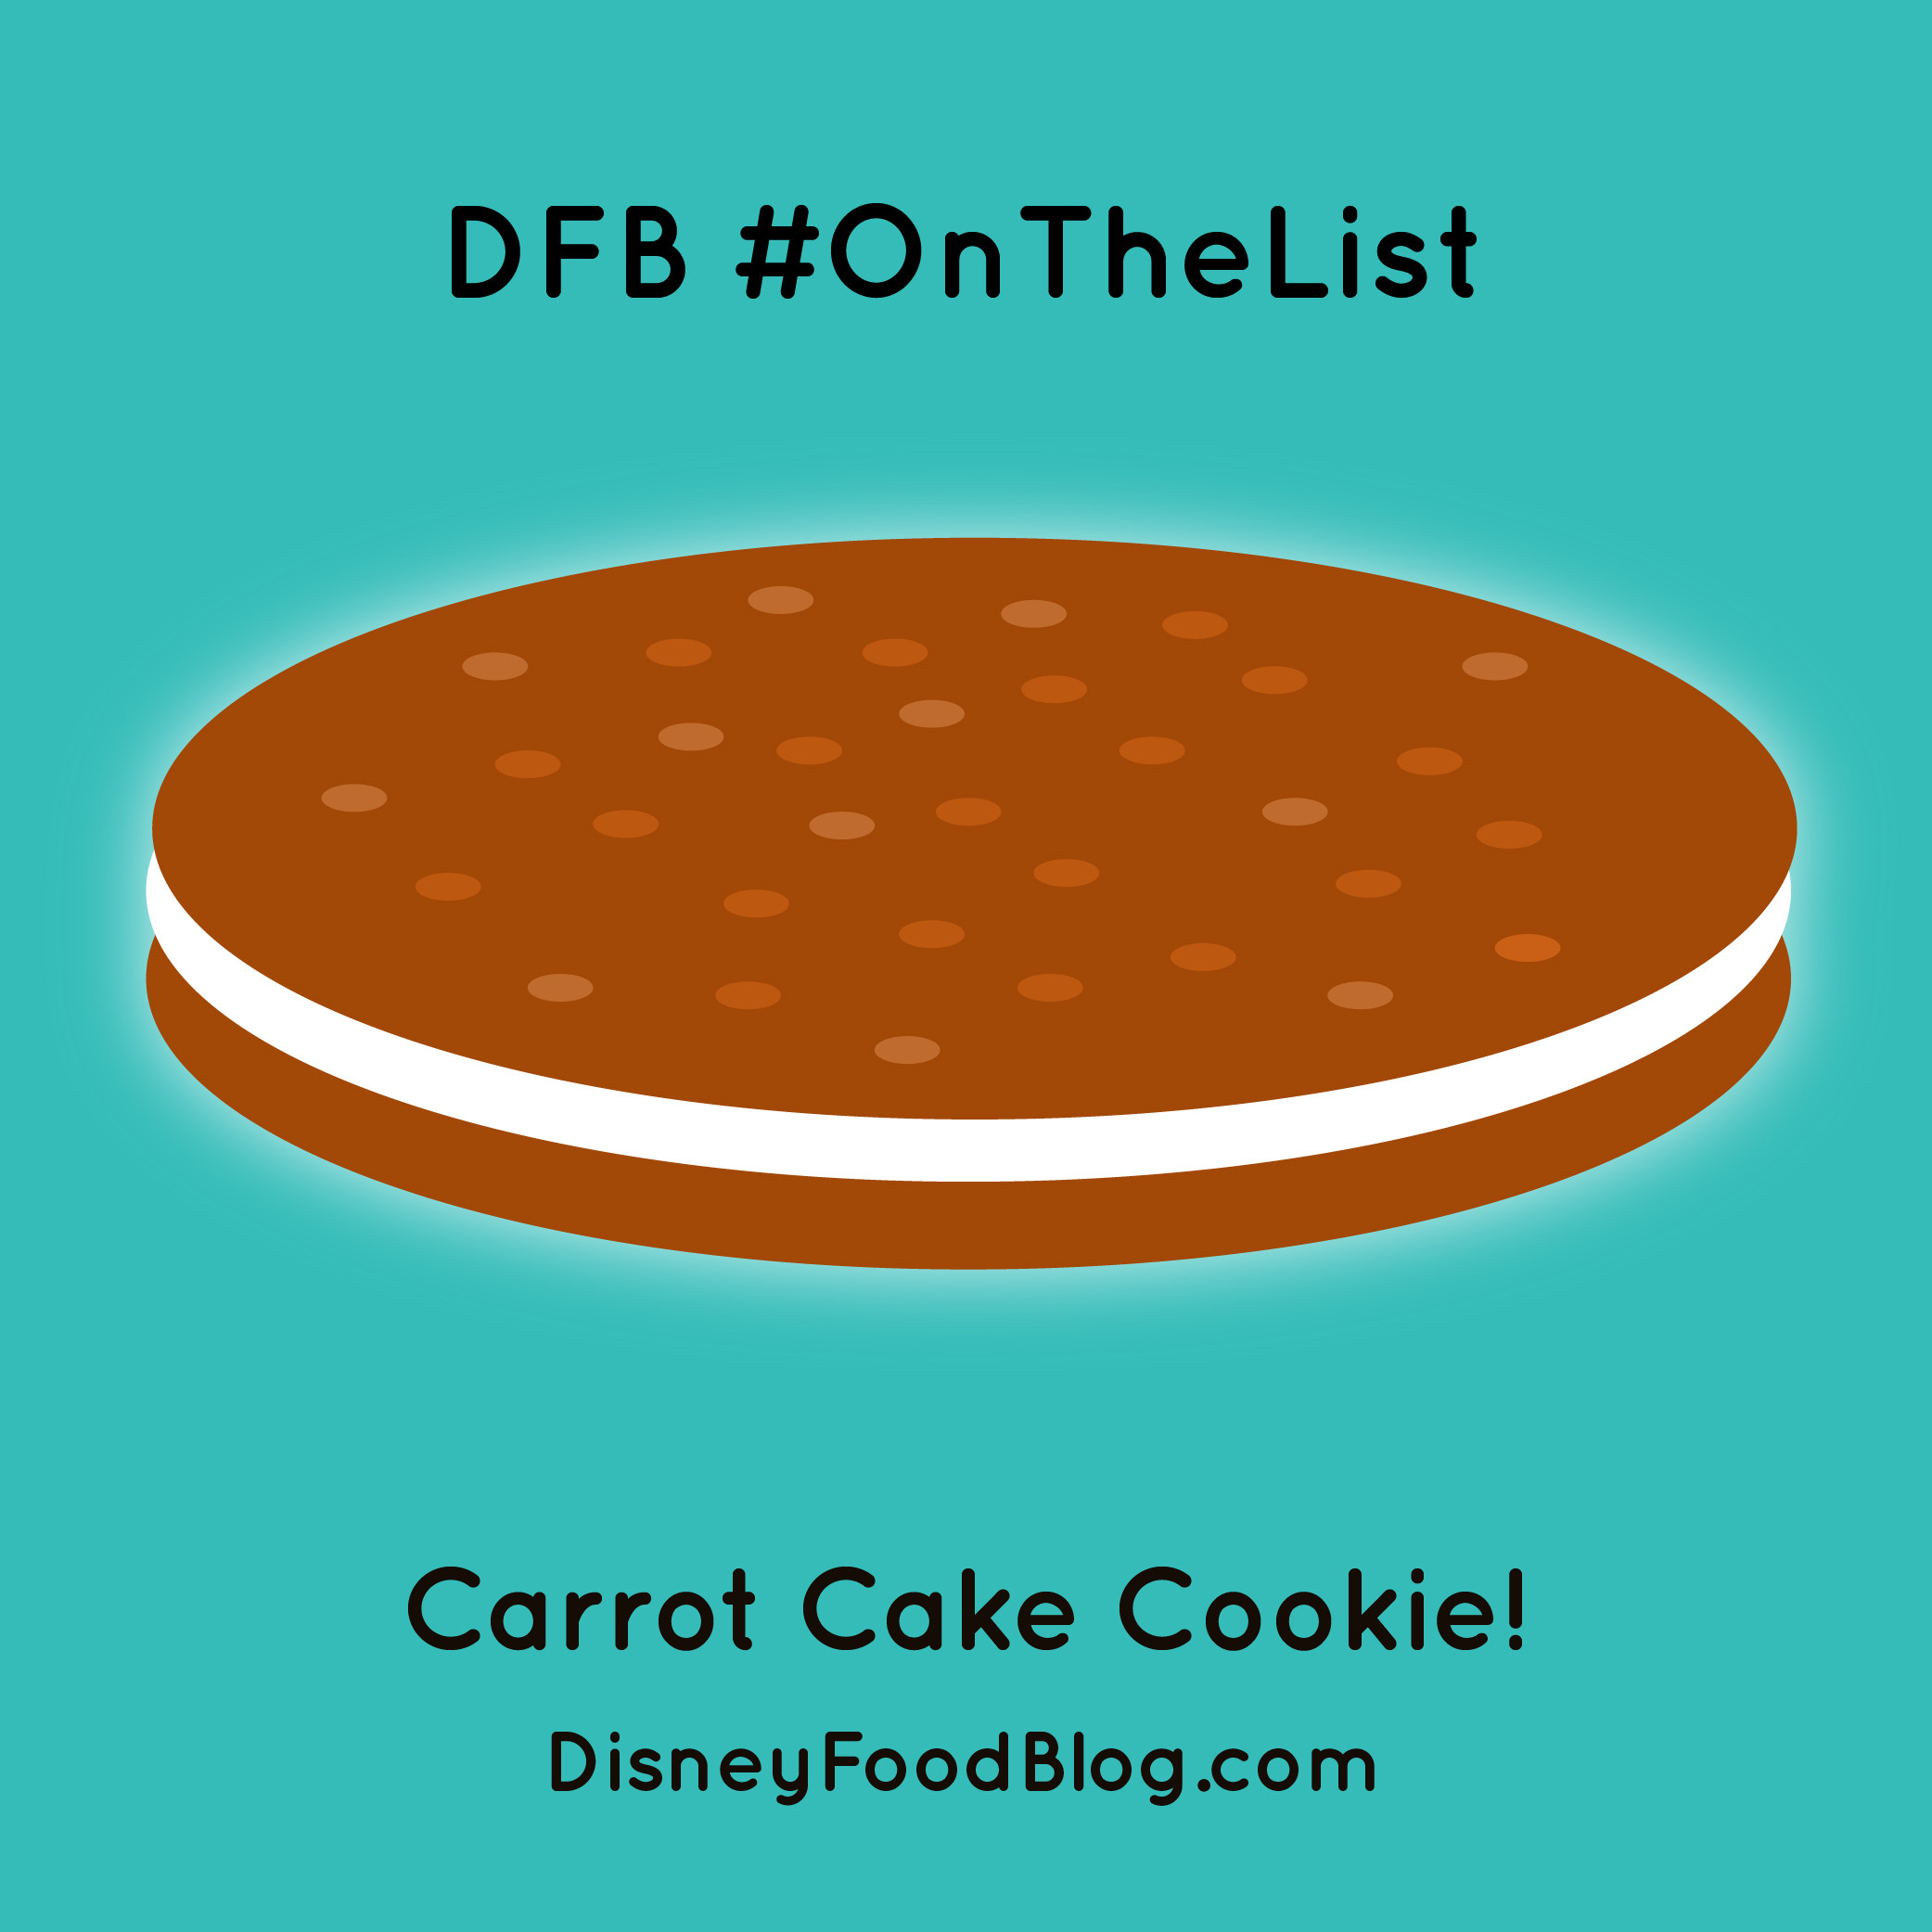 Carrot Cake Cookie Disney  TheList Carrot Cake Cookie in Disney's Hollywood